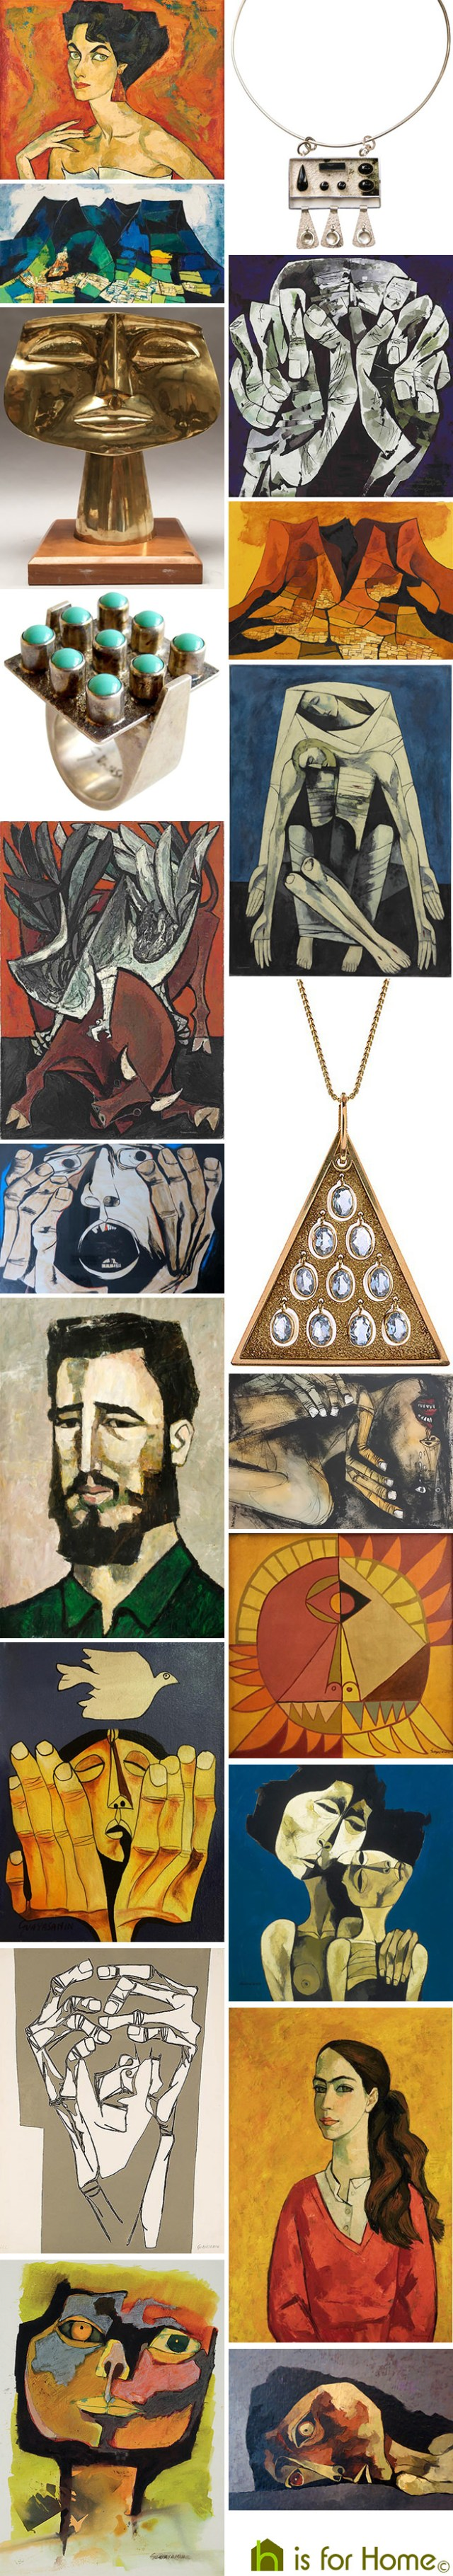 Mosaic of works by Oswaldo Guayasamín | H is for Home